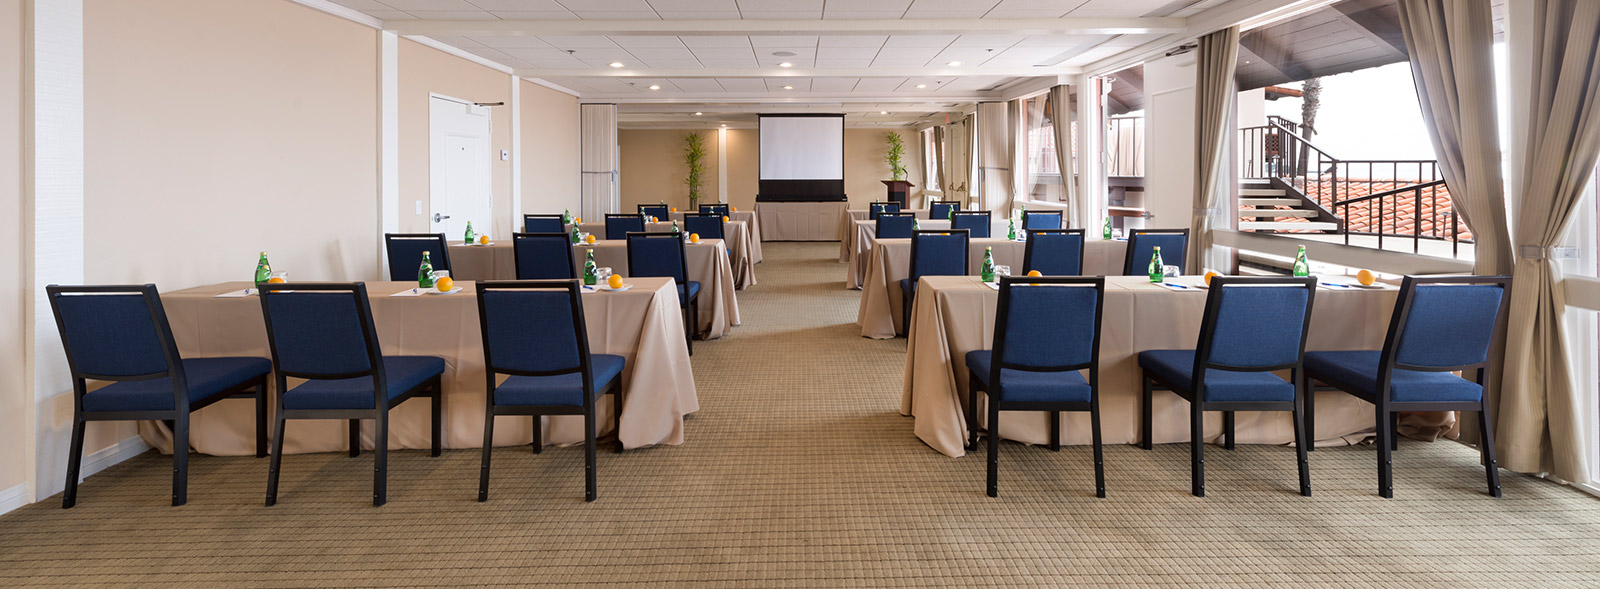 La Jolla Shores Hotel meeting room setup with chairs and tables